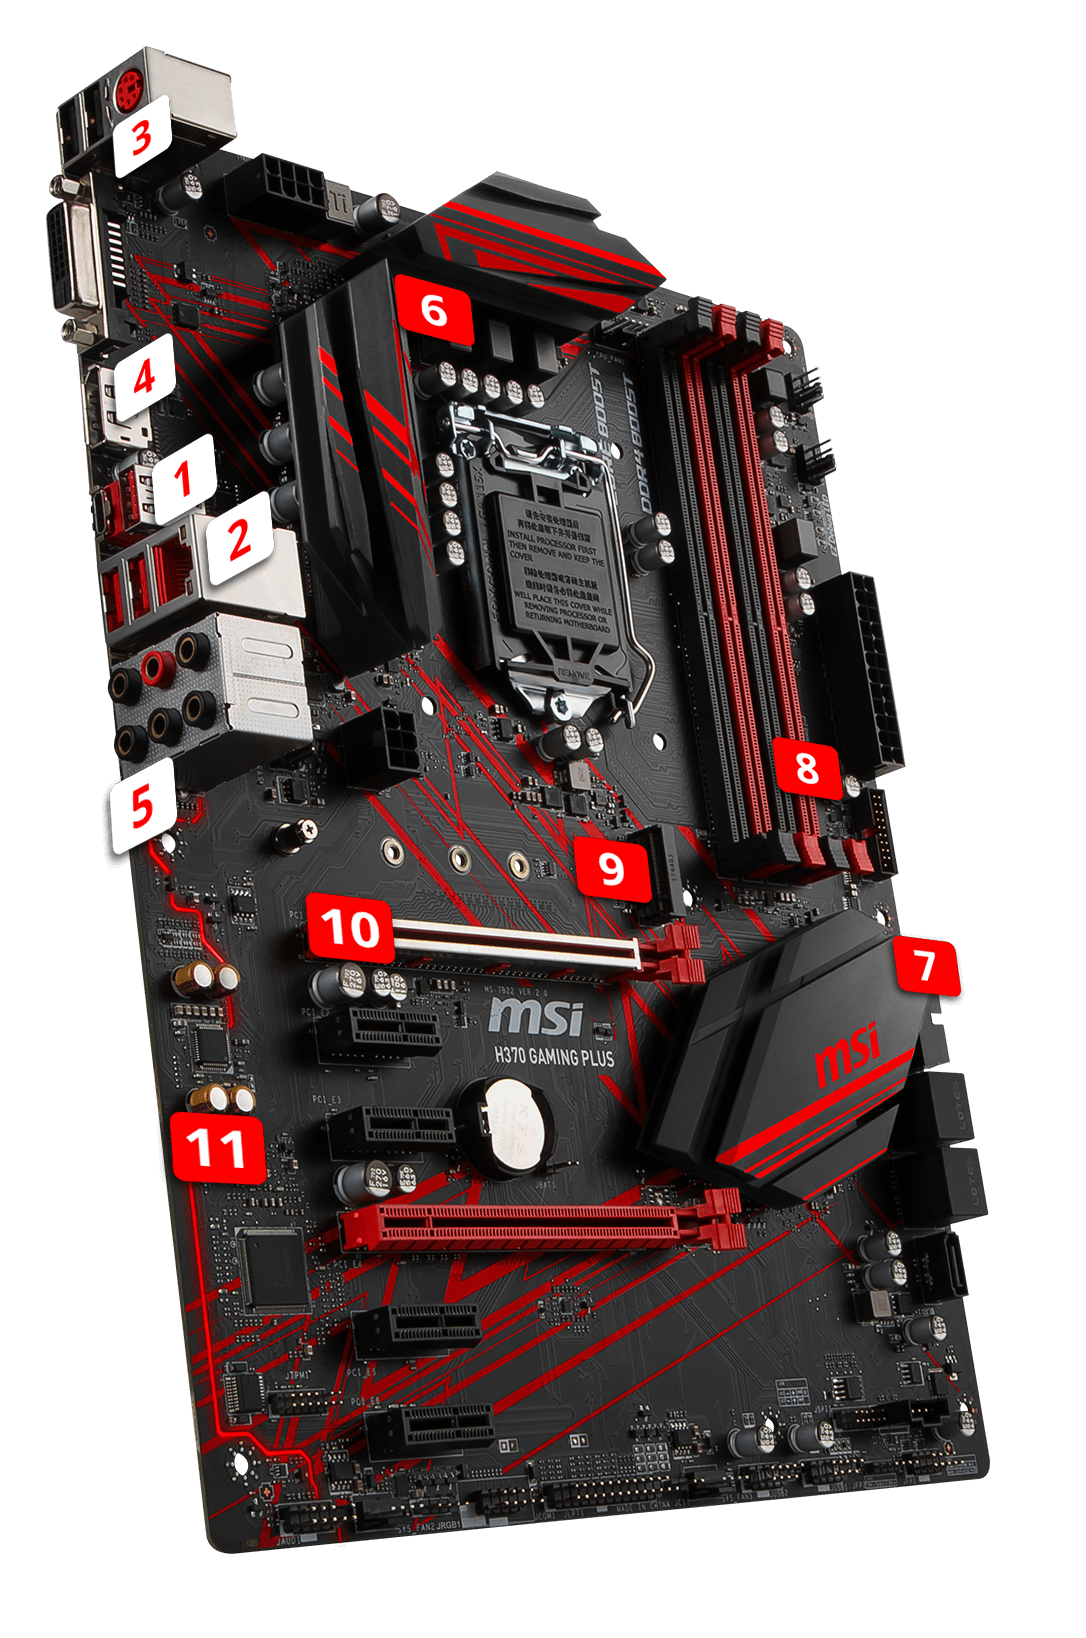 MSI H370 GAMING PLUS overview